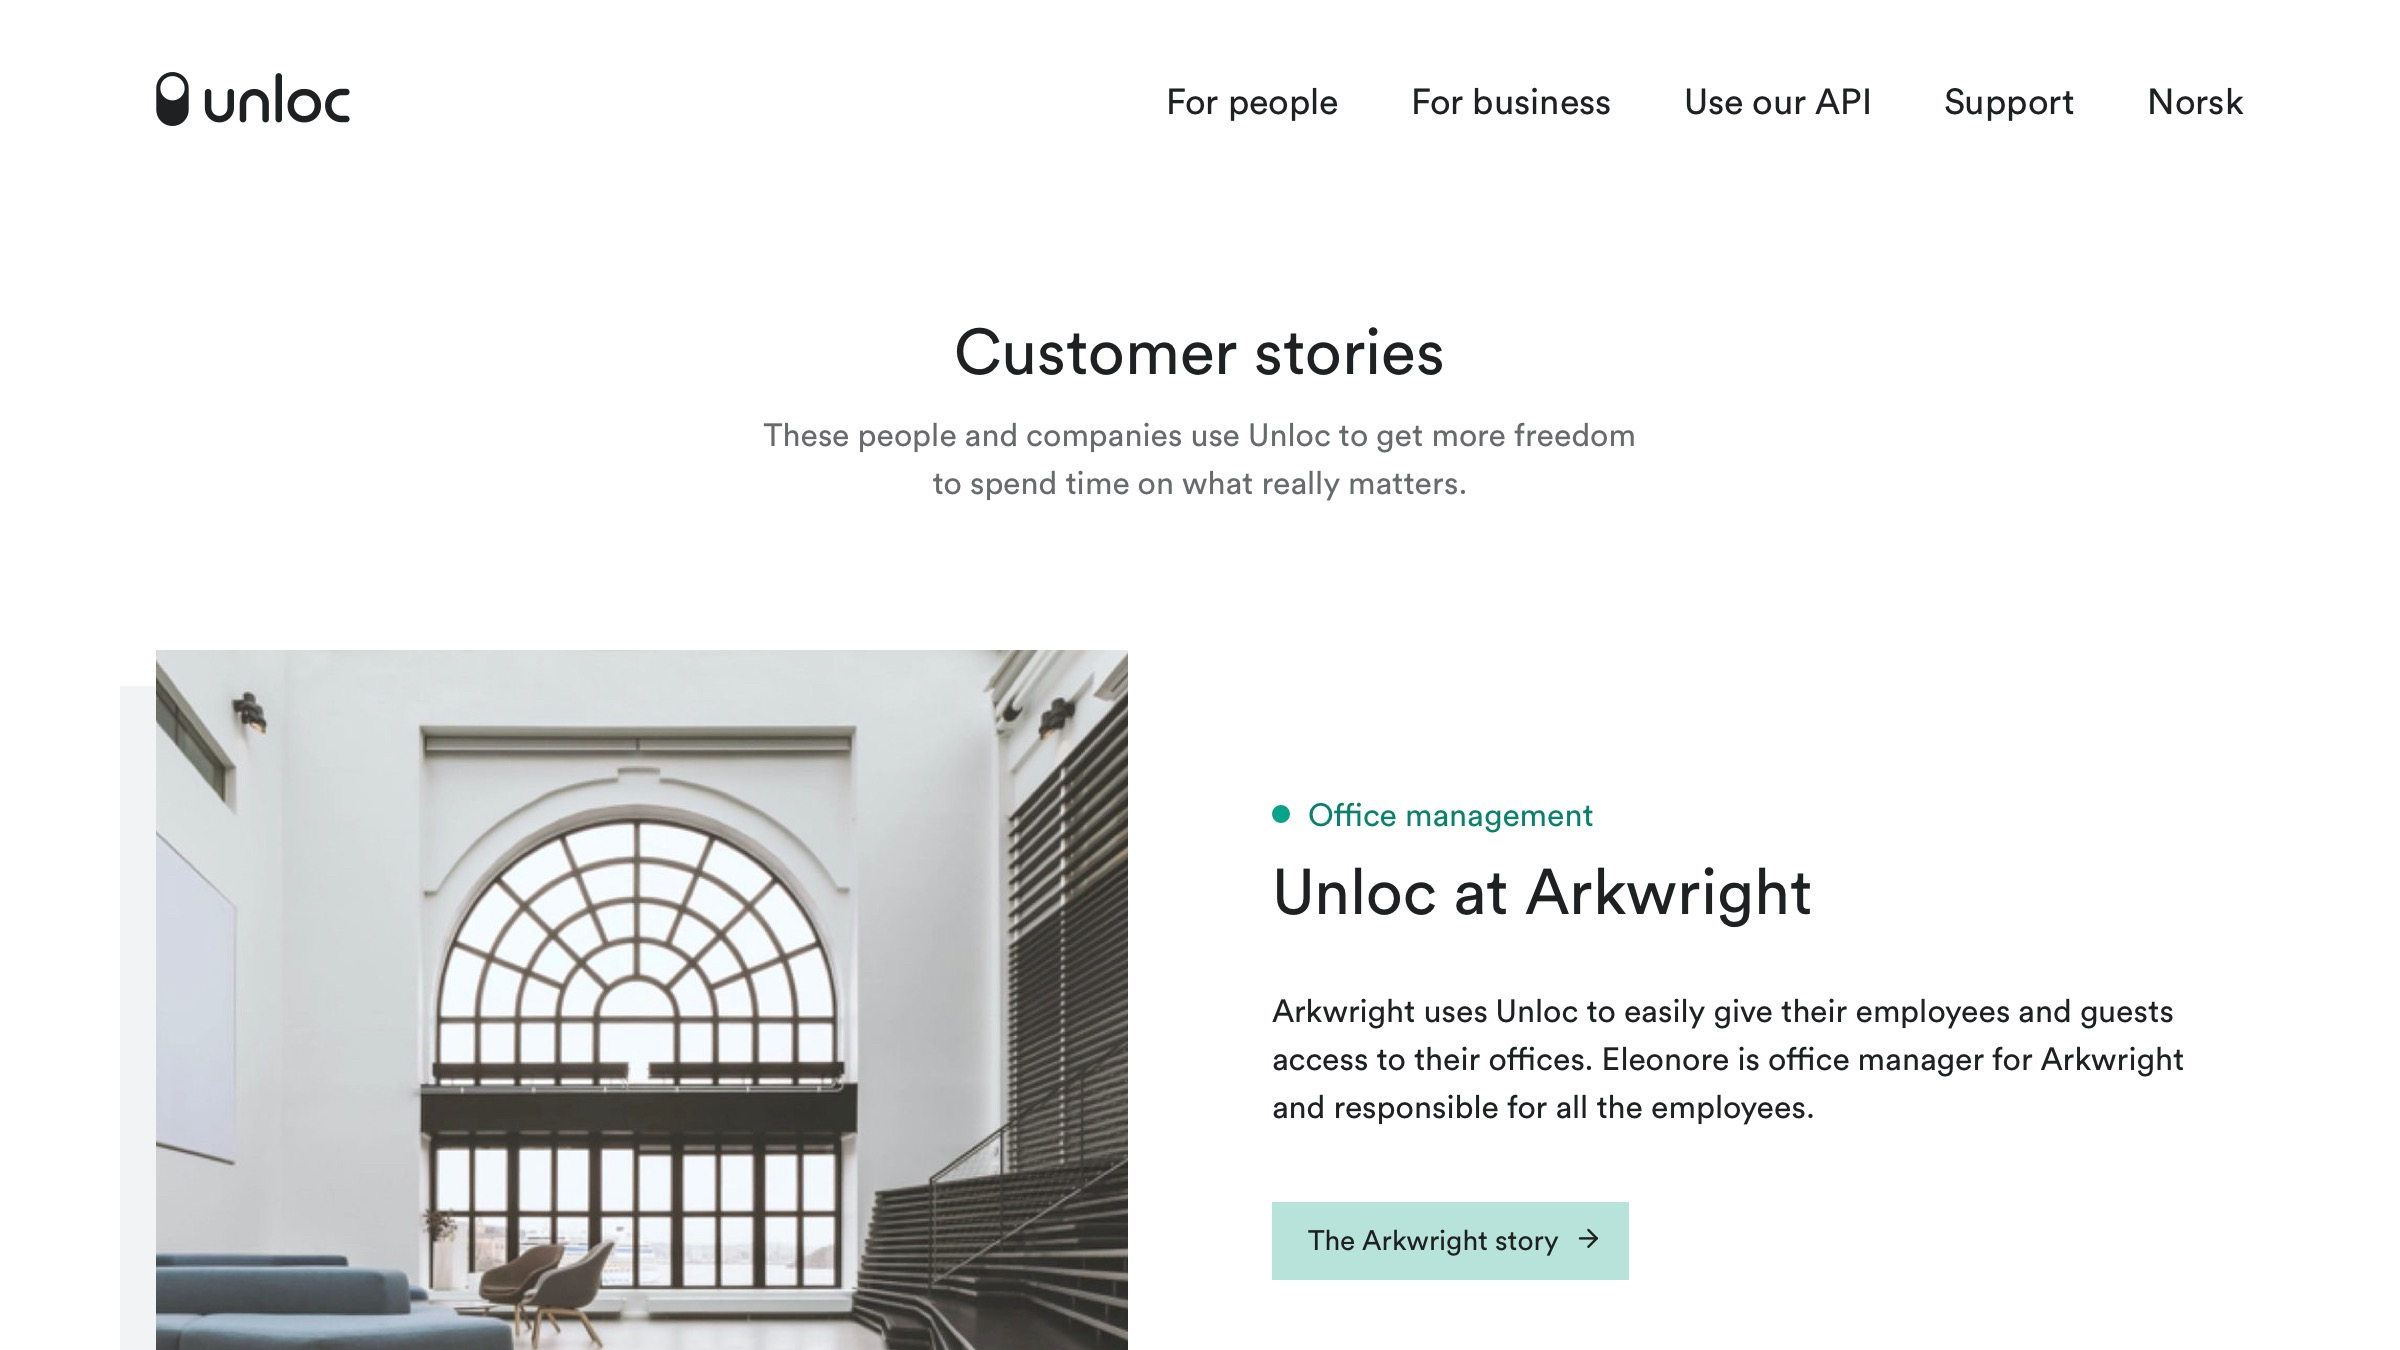 Customer stories overview page